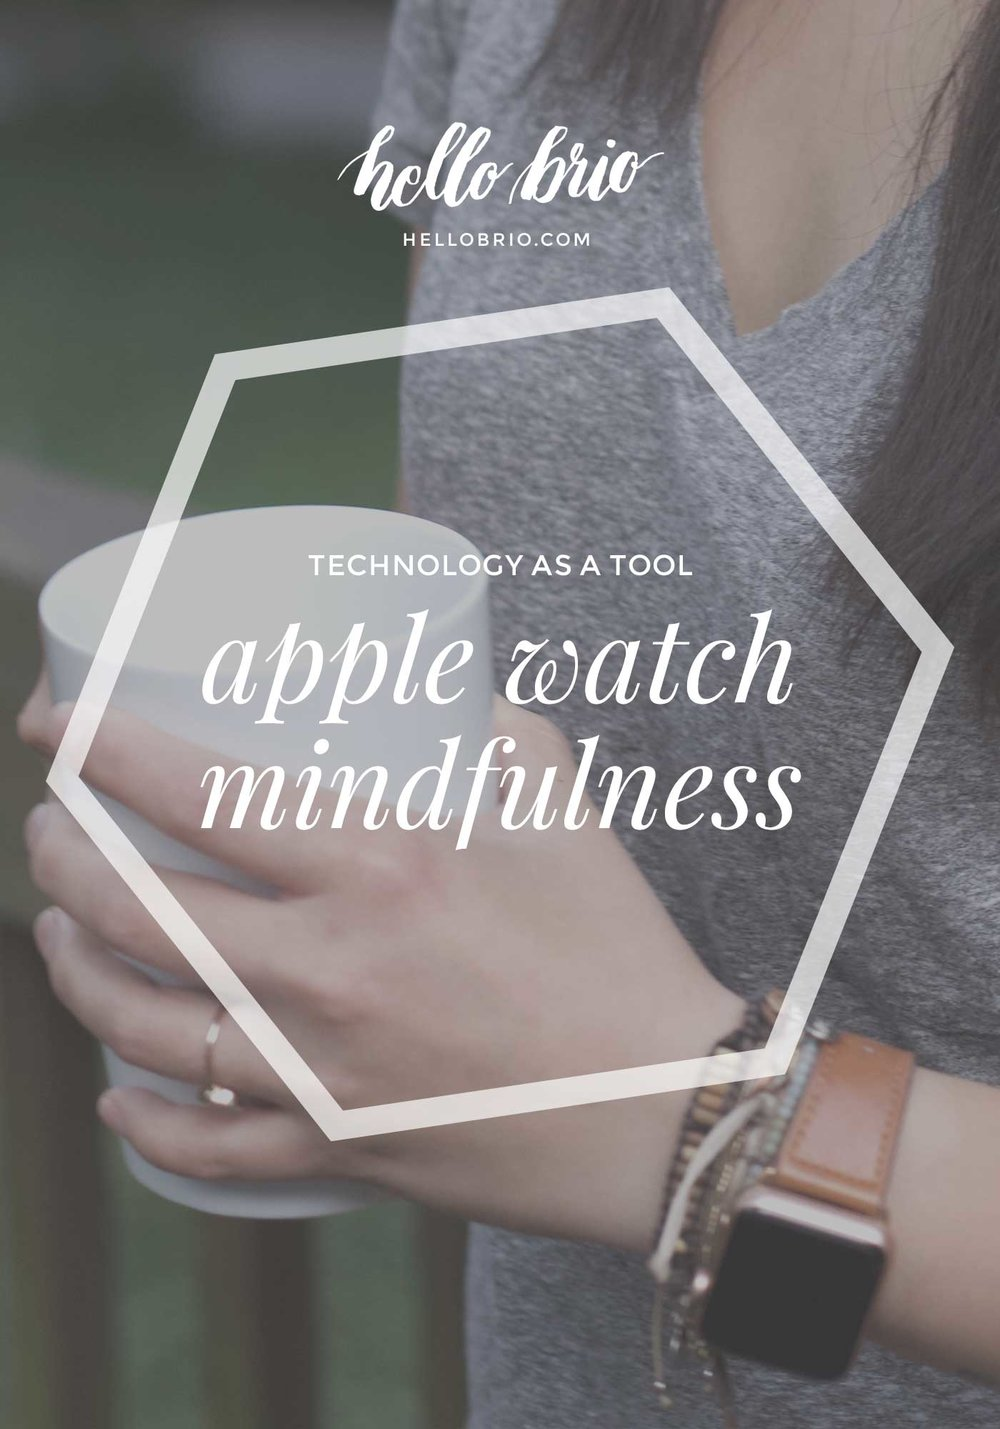 Apple Watch brings mindfulness | Hello Brio